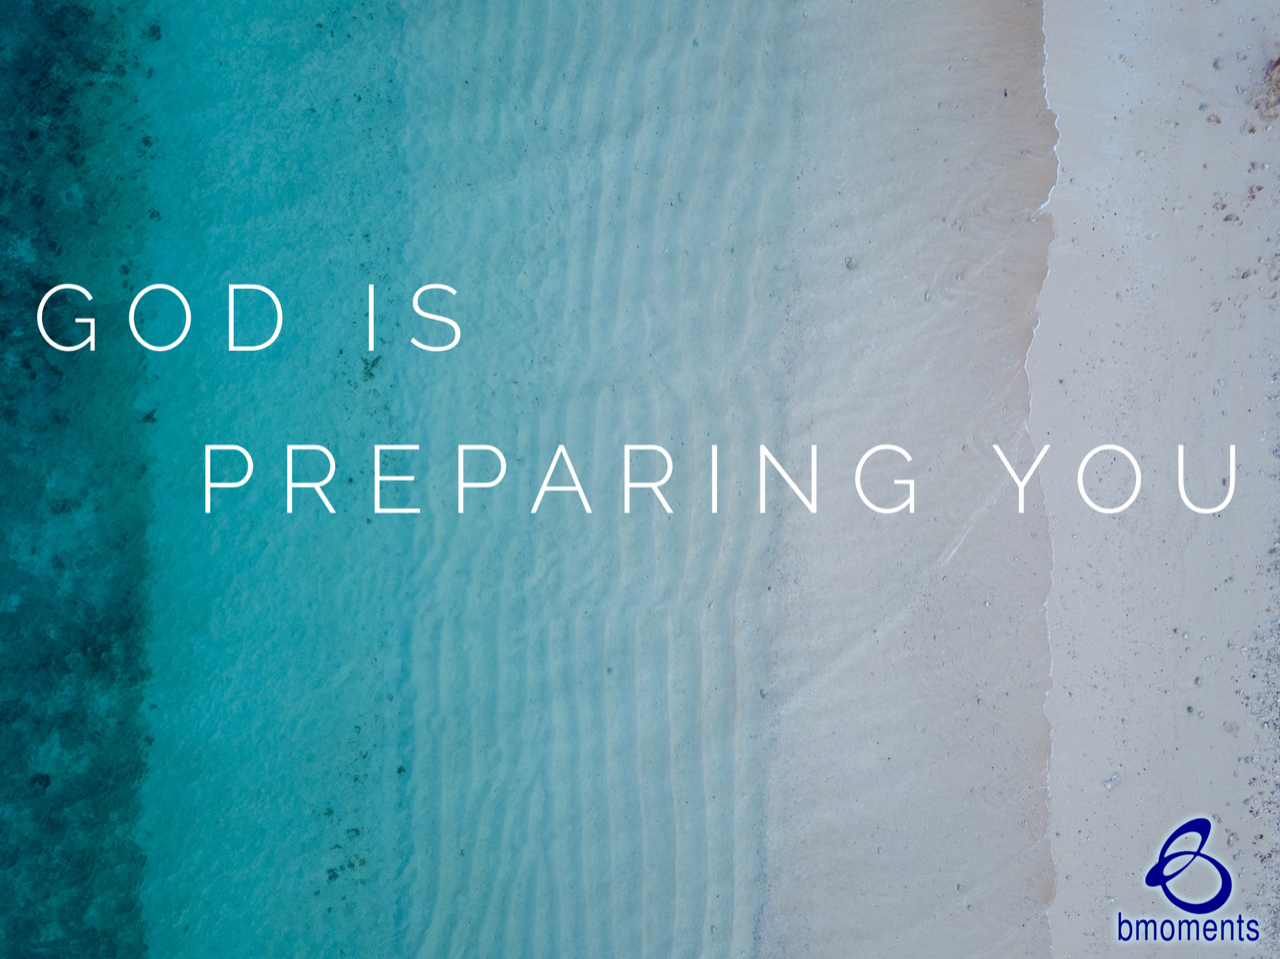 Even in Transition, God Is Preparing You